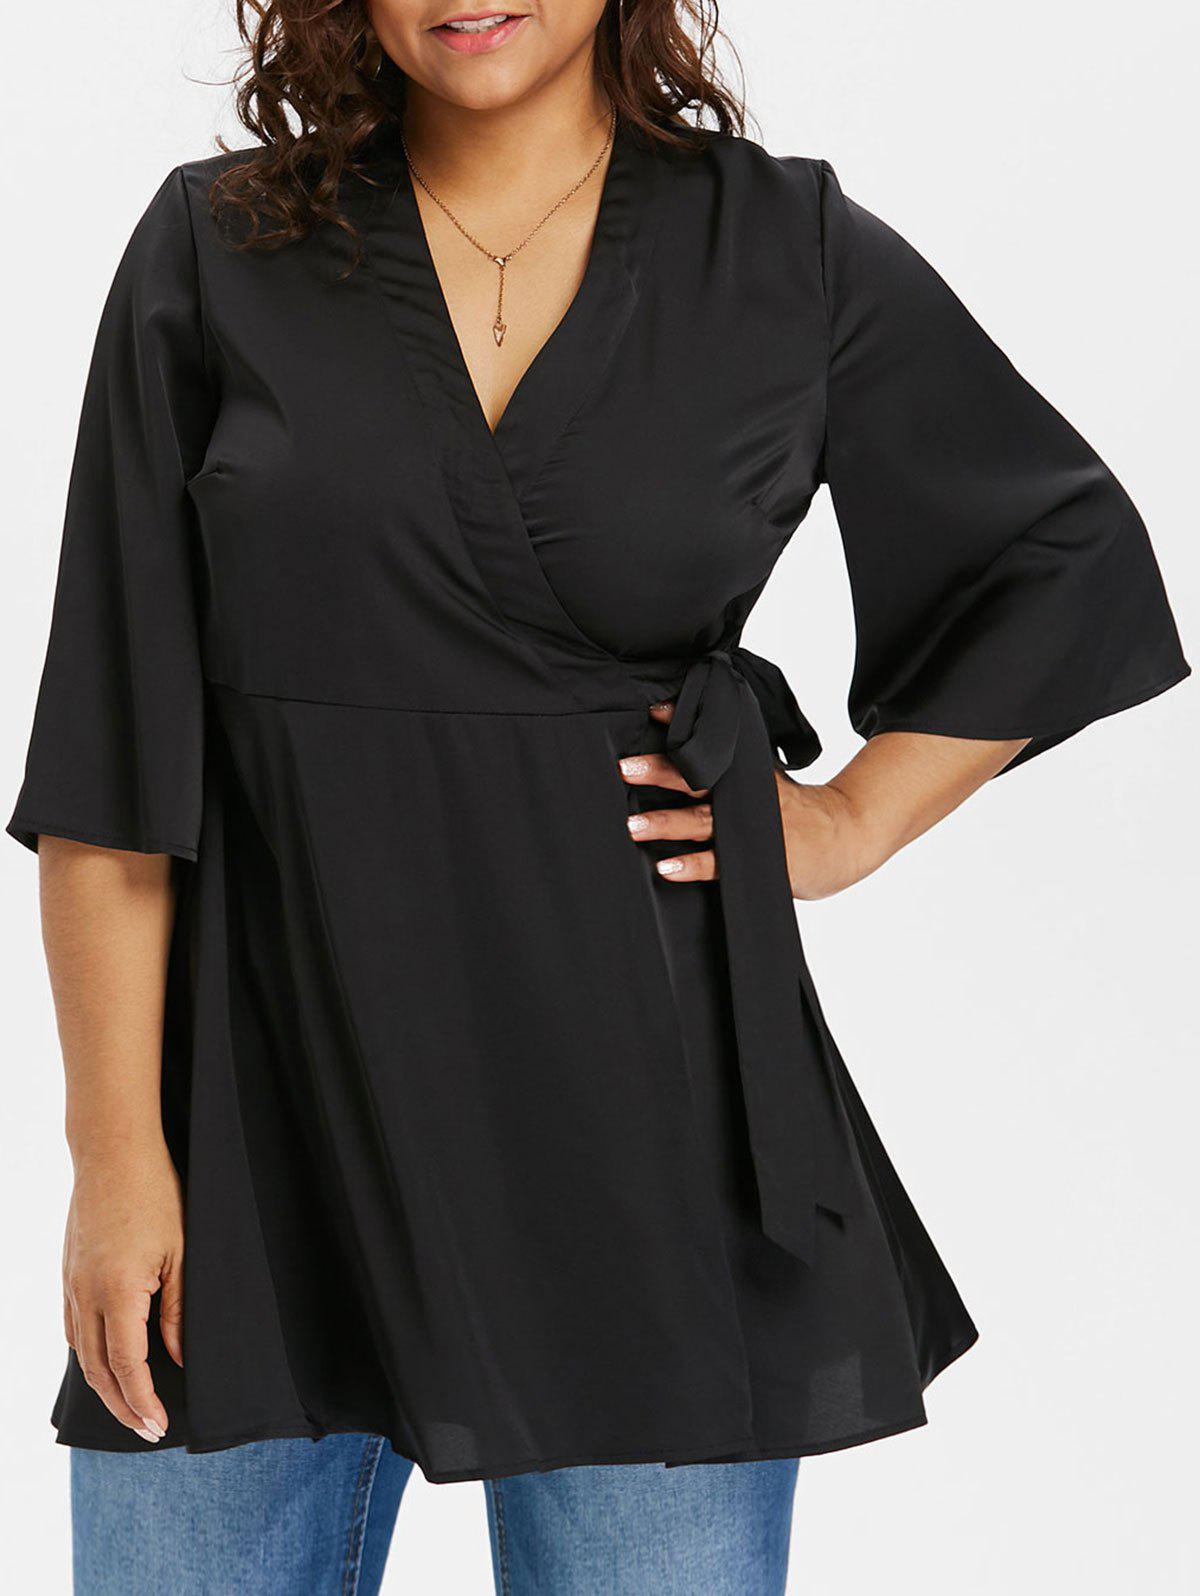 Chic Plus Size Swing Wrap Top